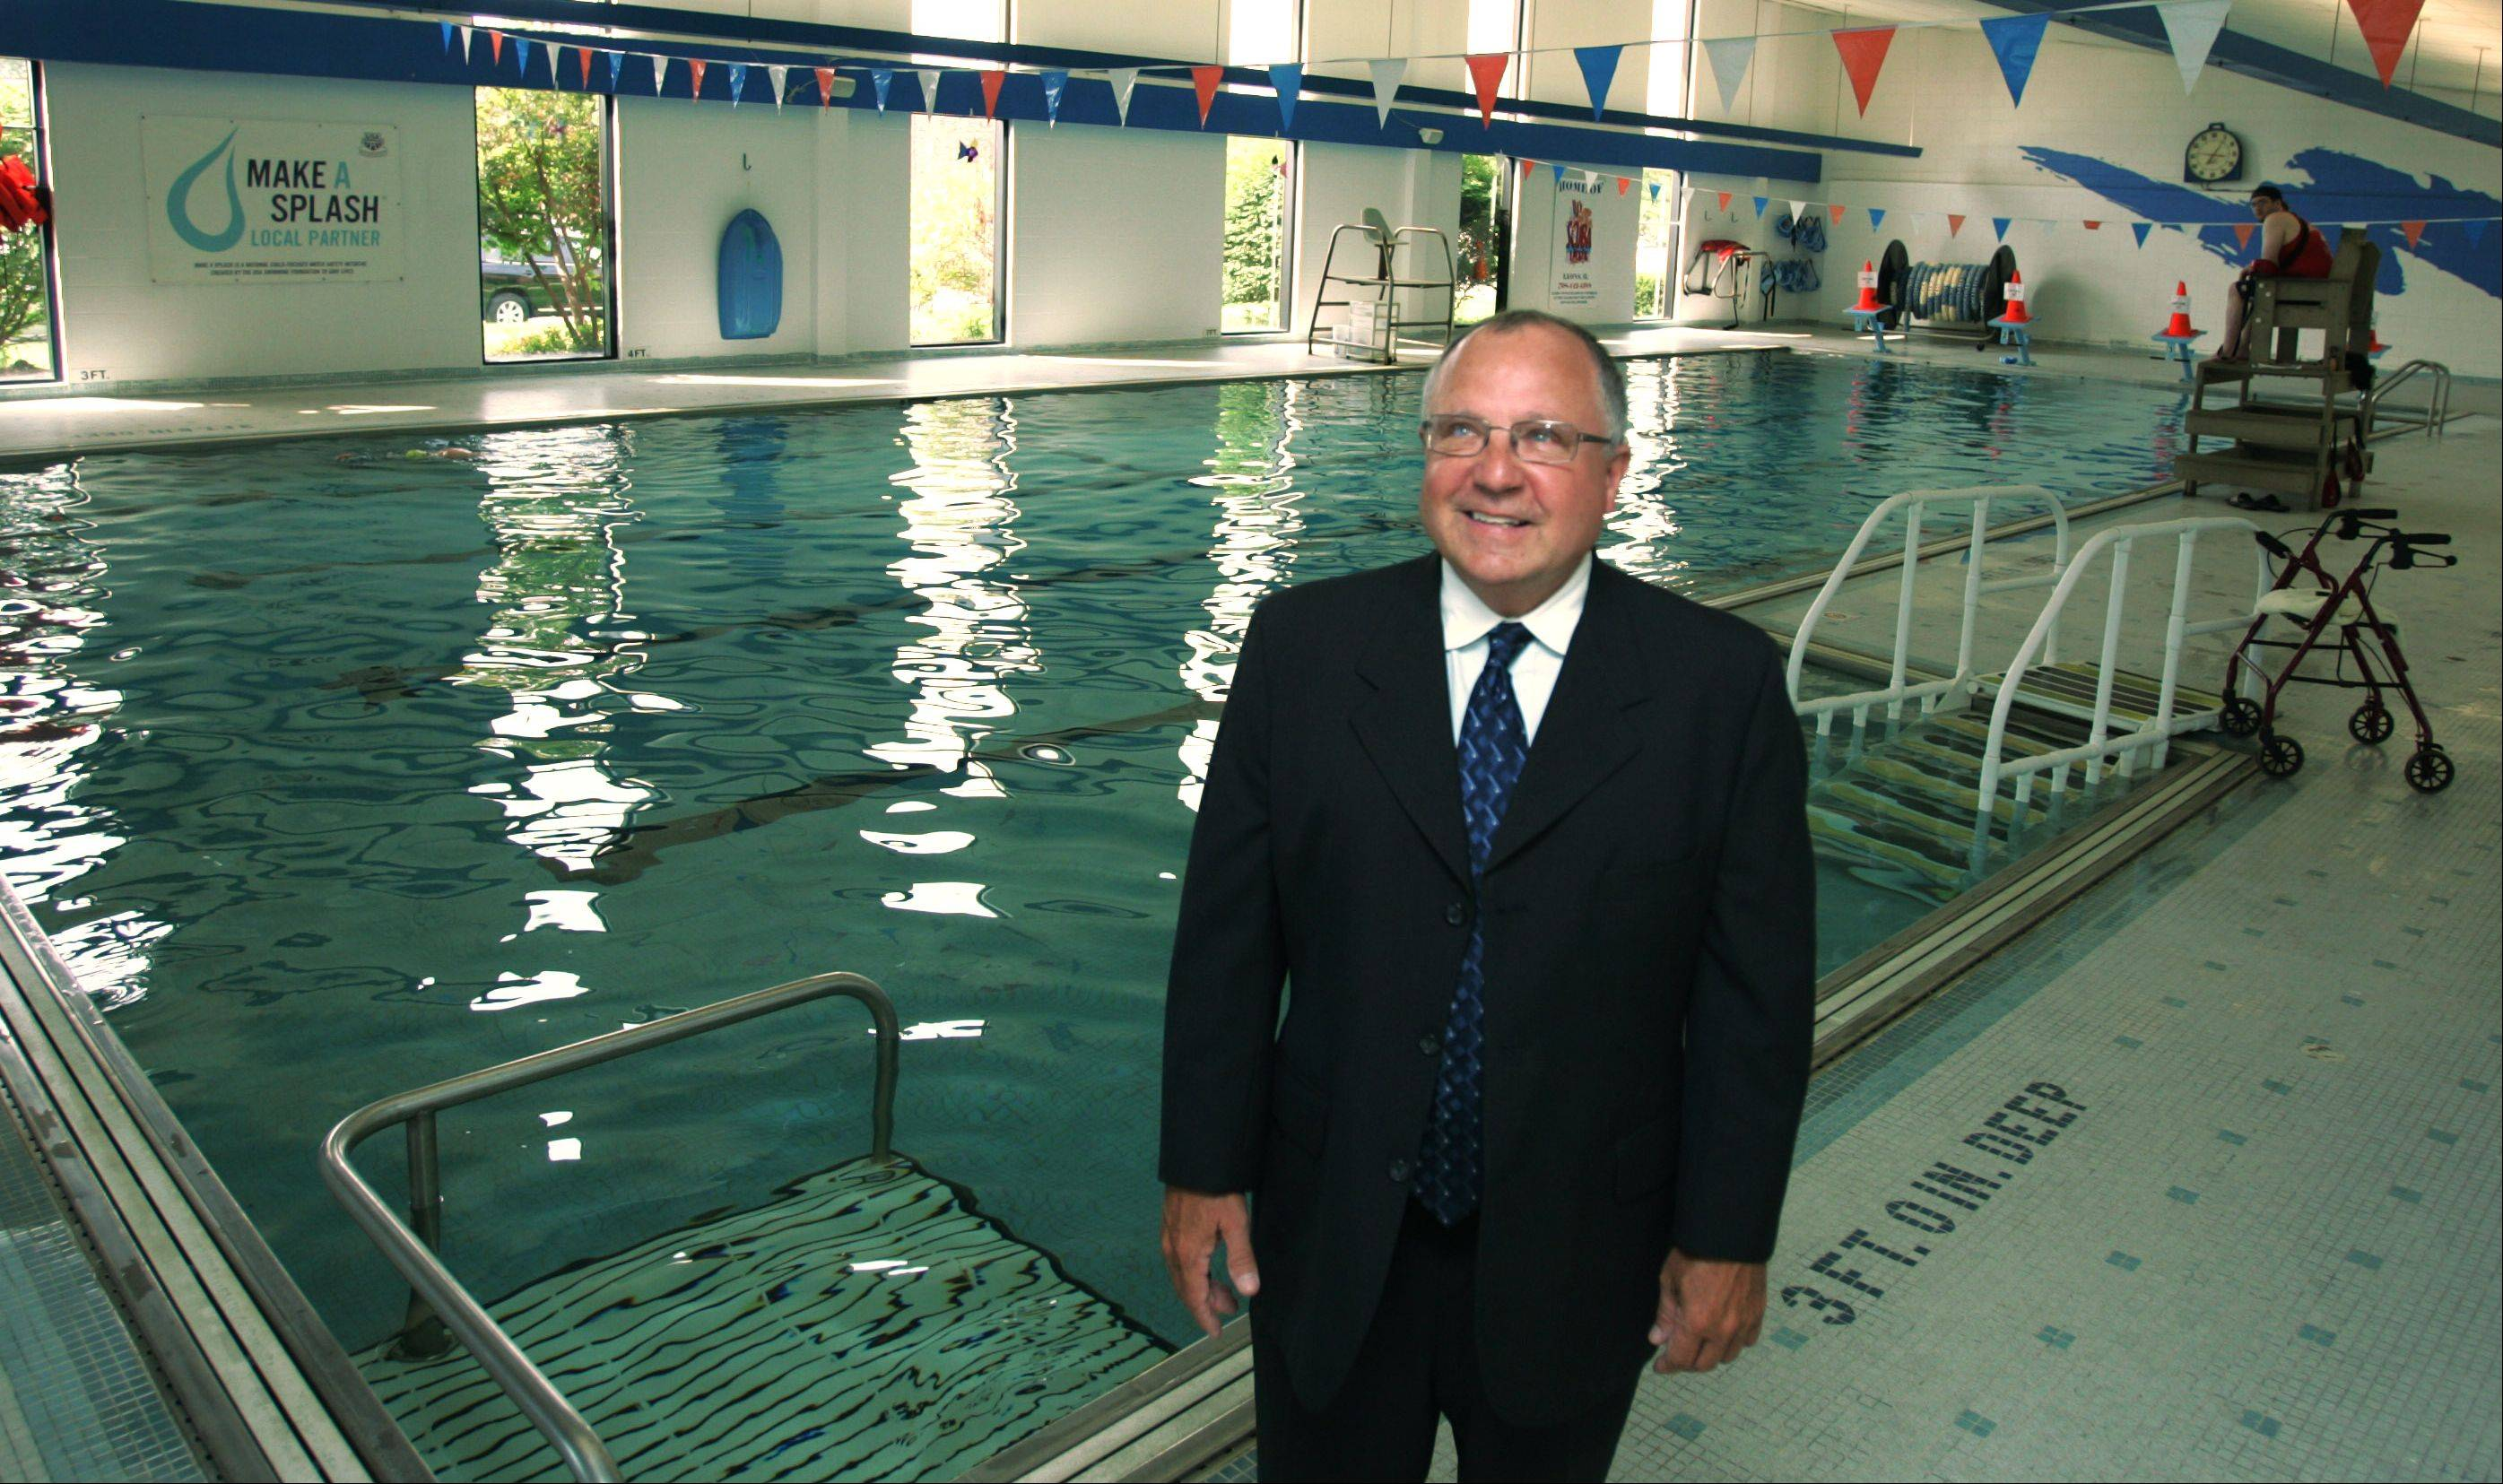 Steve Dahlin, 62, of Elmhurst recently retired as chief operating officer of the YMCA of Metropolitan Chicago.